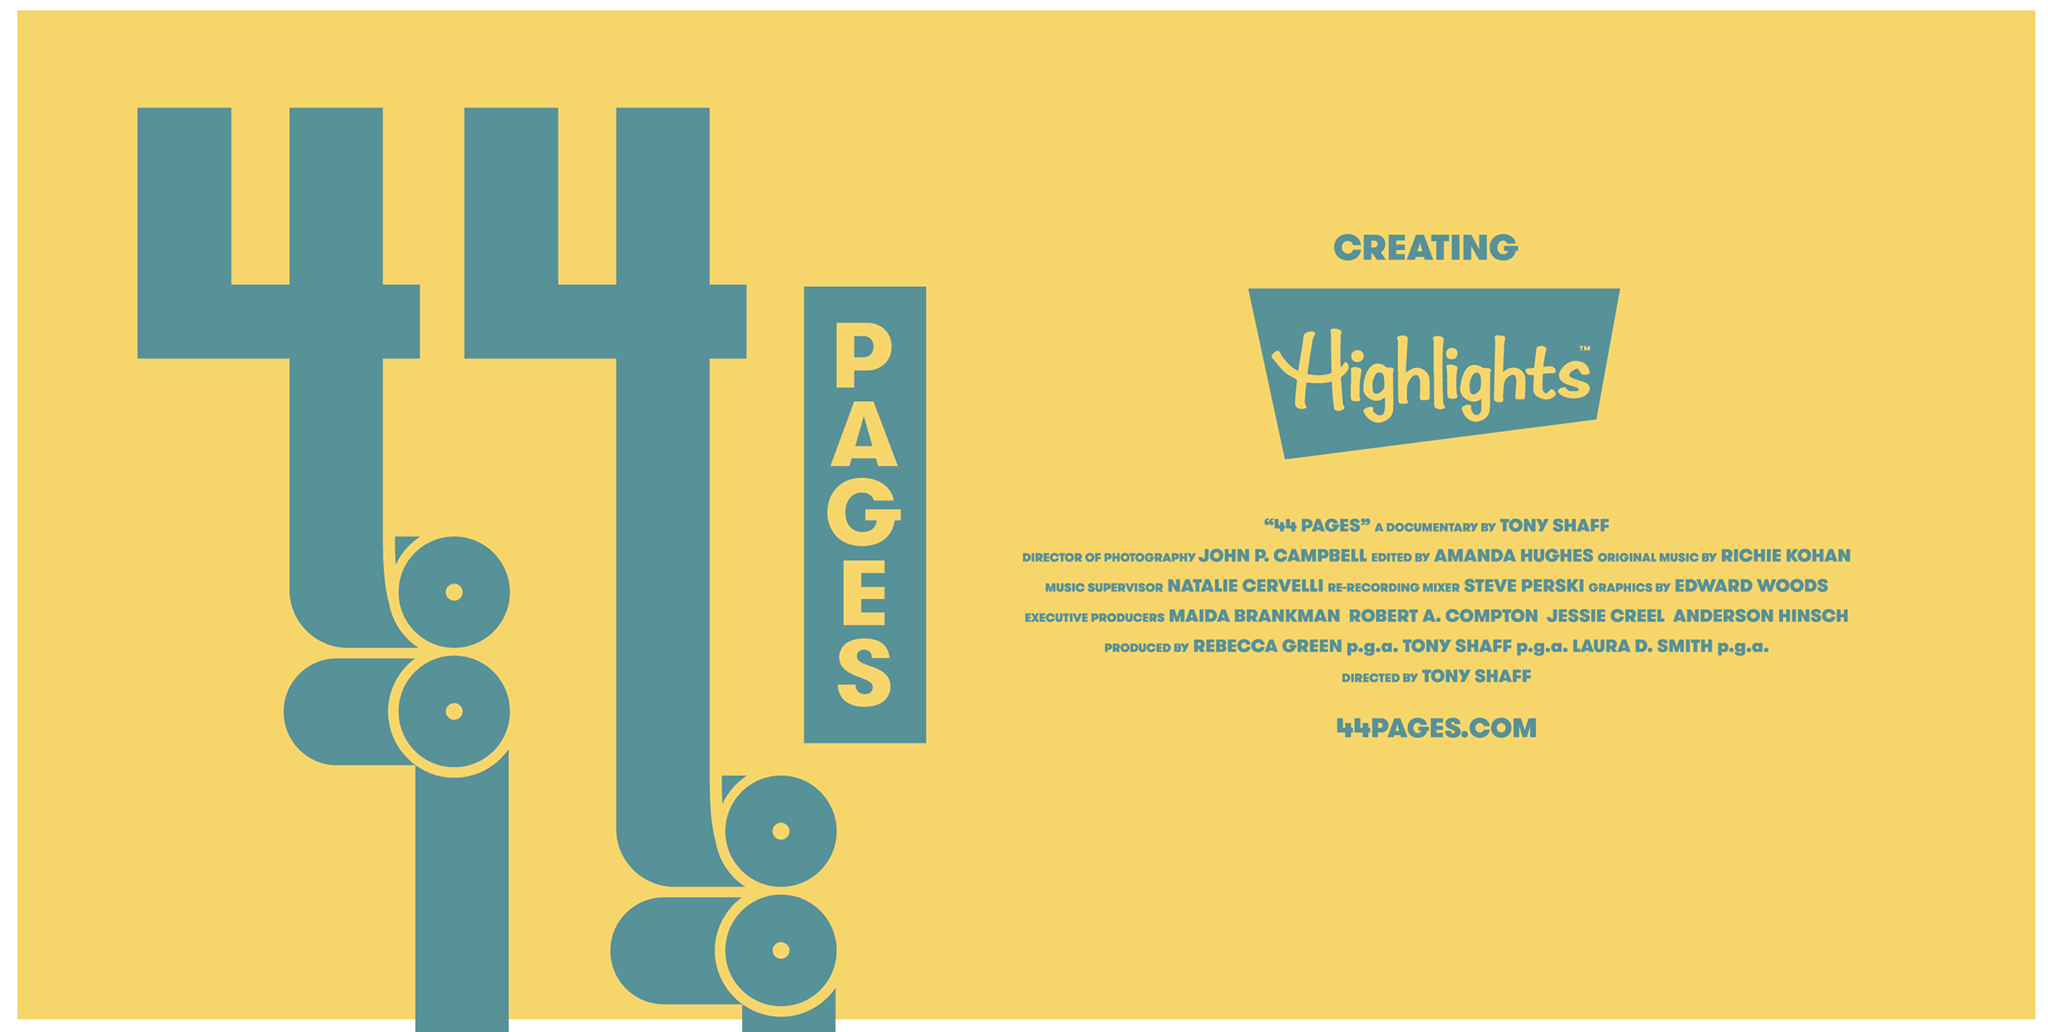 44 PAGES  is a new feature documentary that follows the creation of the 70th Anniversary Issue of Highlights– the world's most popular children's magazine. Directed by Tony Shaff.  World premier 3.6.17 at #SXSWedu    http://44pages.com